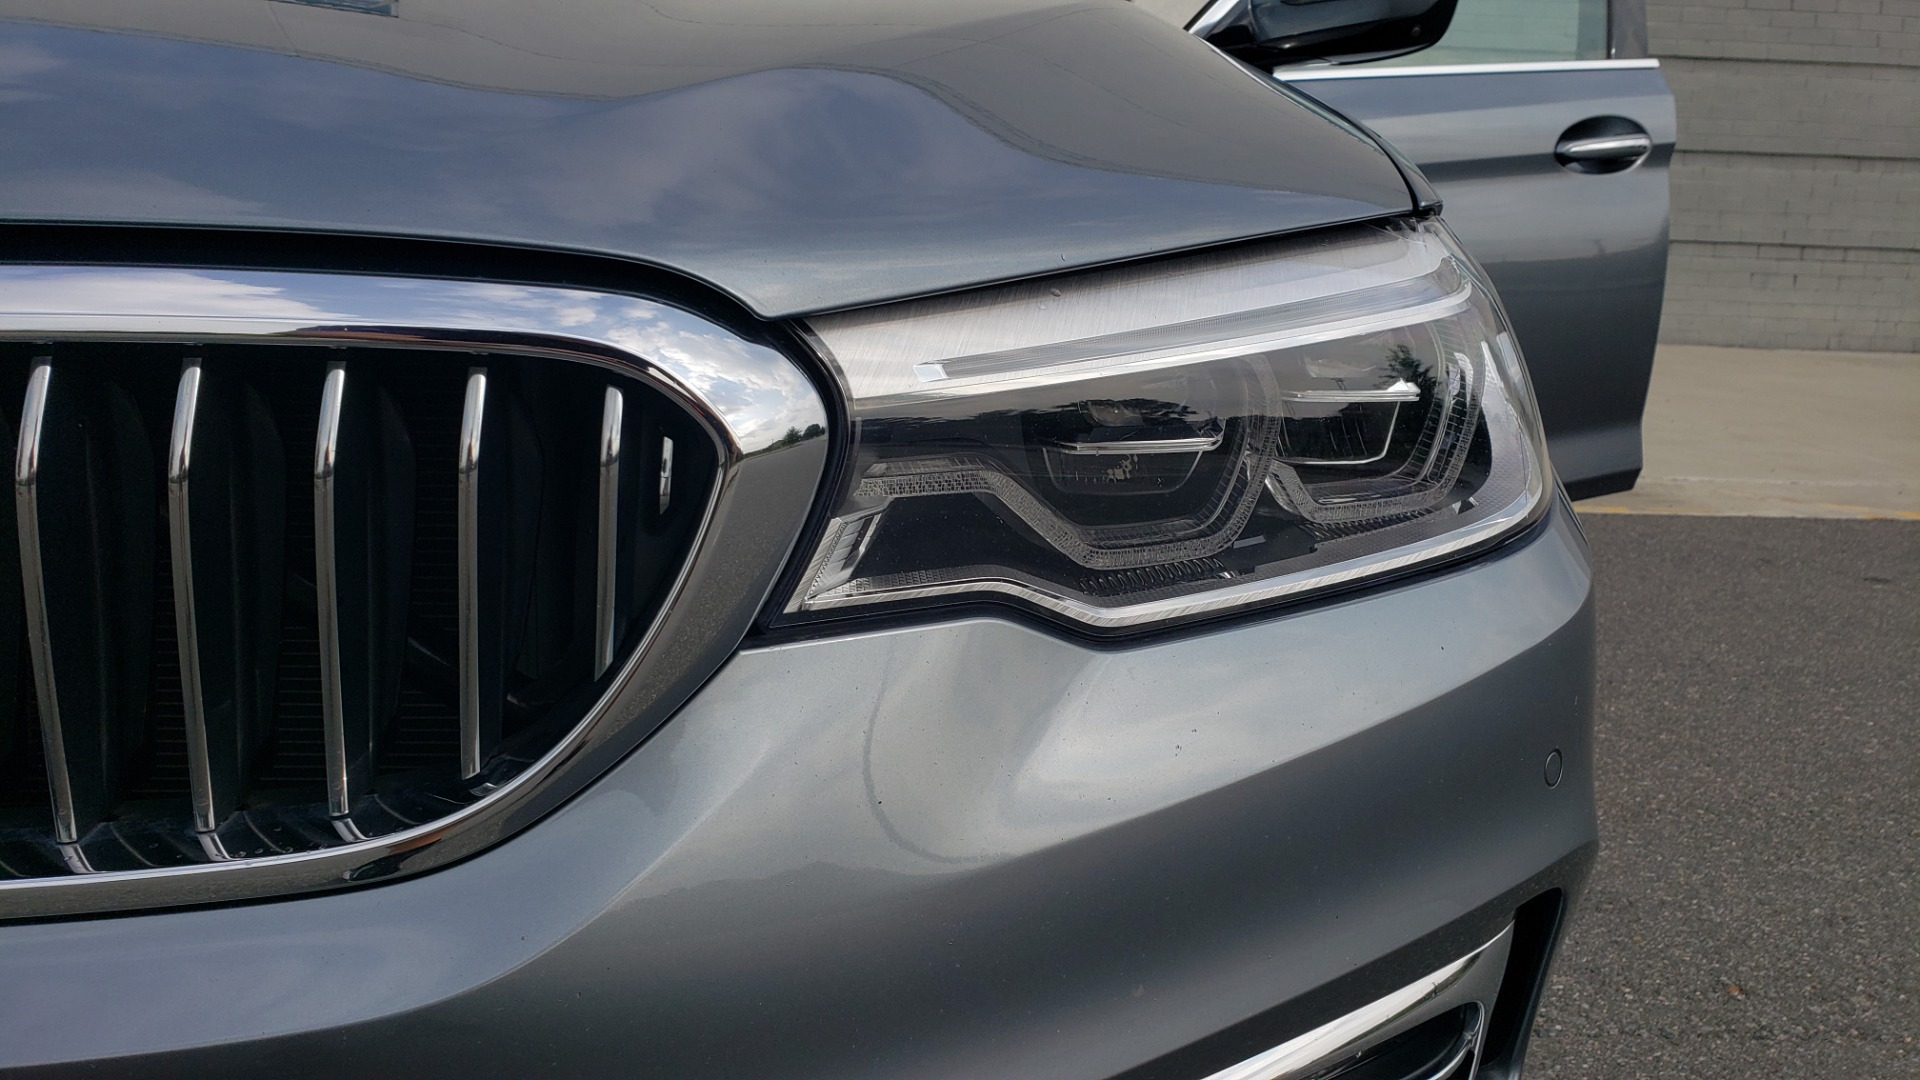 Used 2018 BMW 5 SERIES 540I XDRIVE PREMIUM / EXECUTIVE / LUXURY / H/K SND / REMOTE CONTROL PARKING for sale $40,995 at Formula Imports in Charlotte NC 28227 22